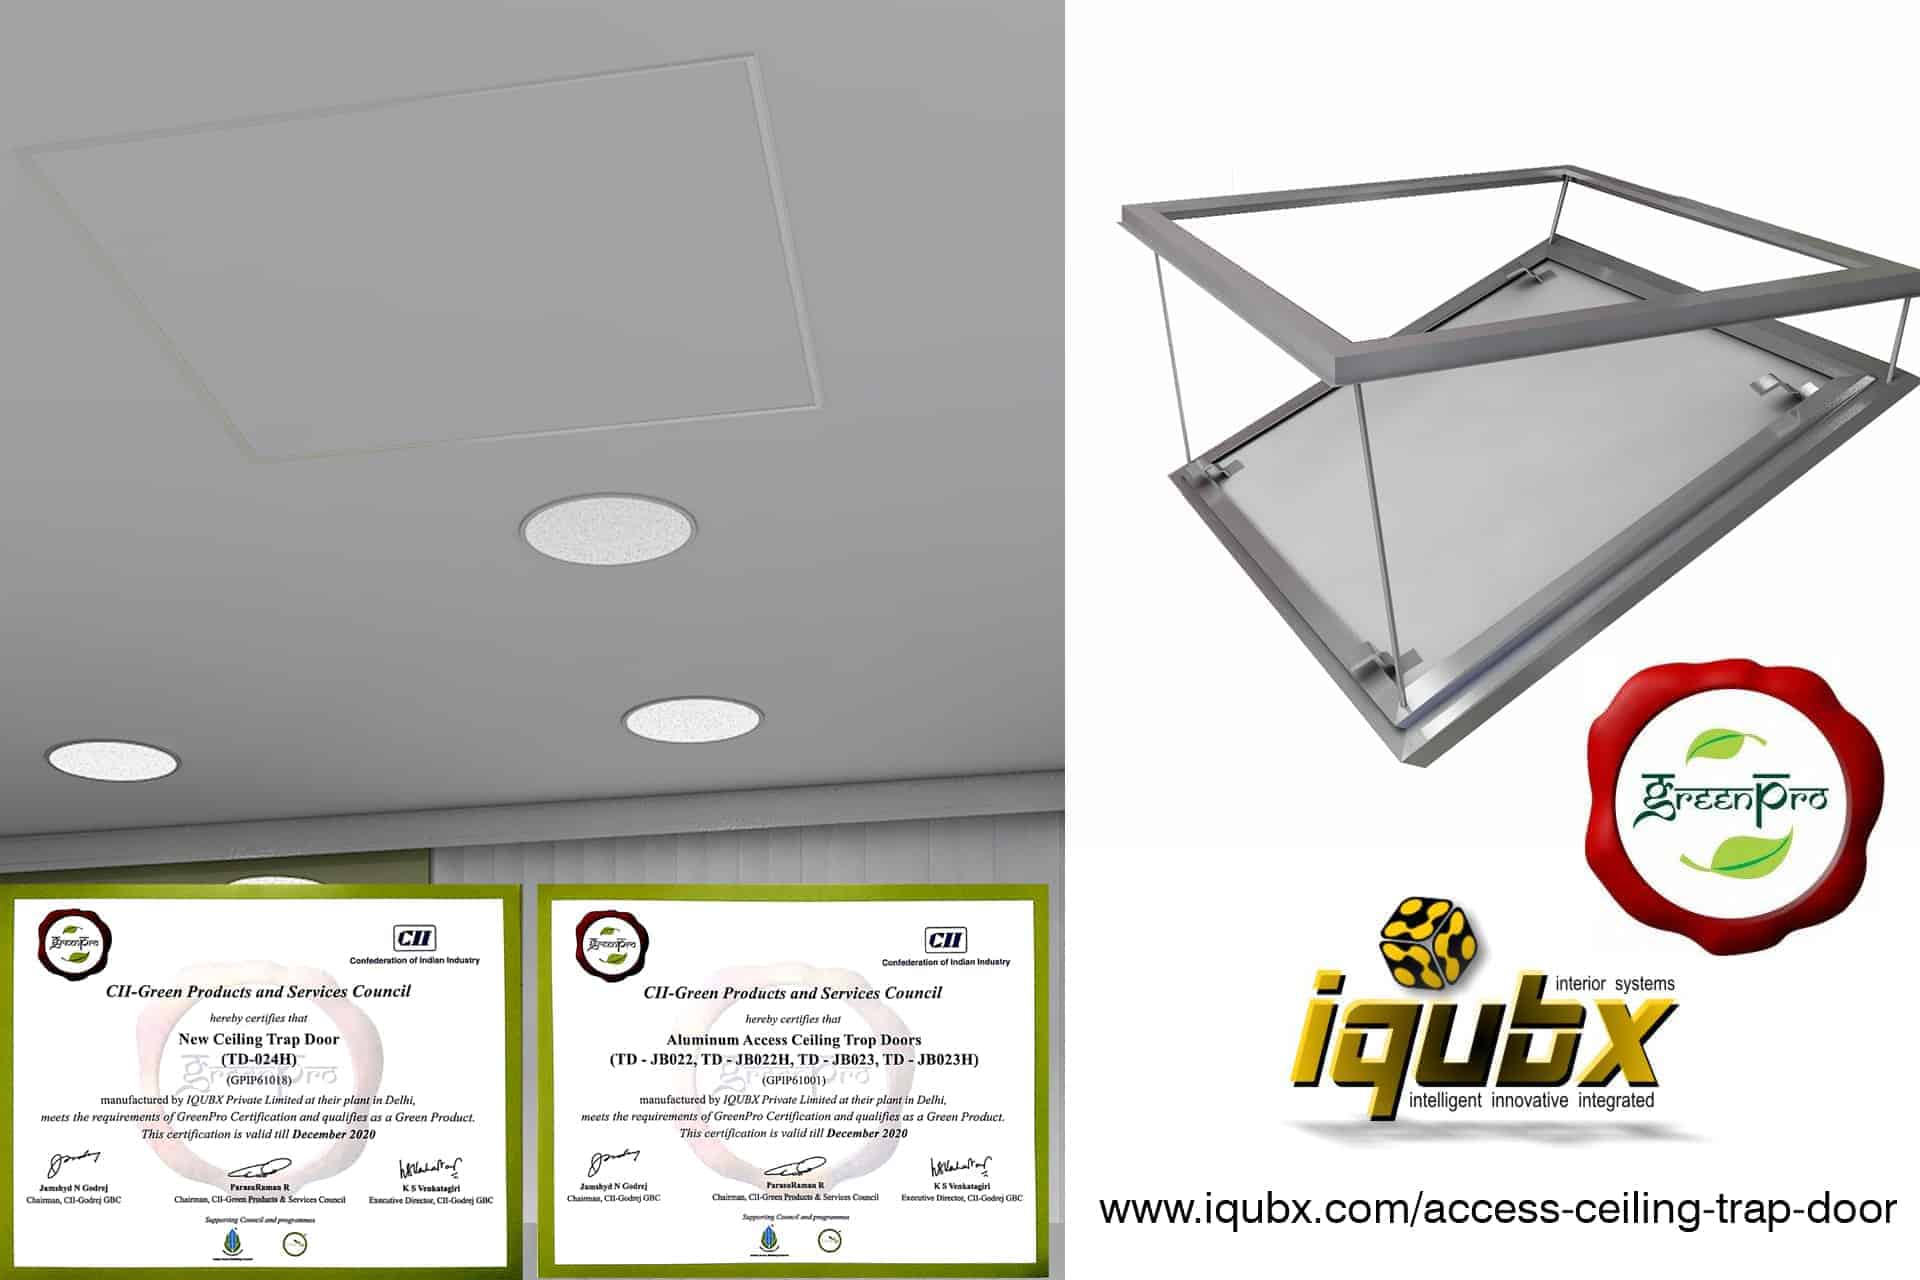 IQUBX ceiling trap door with Greenpro certification